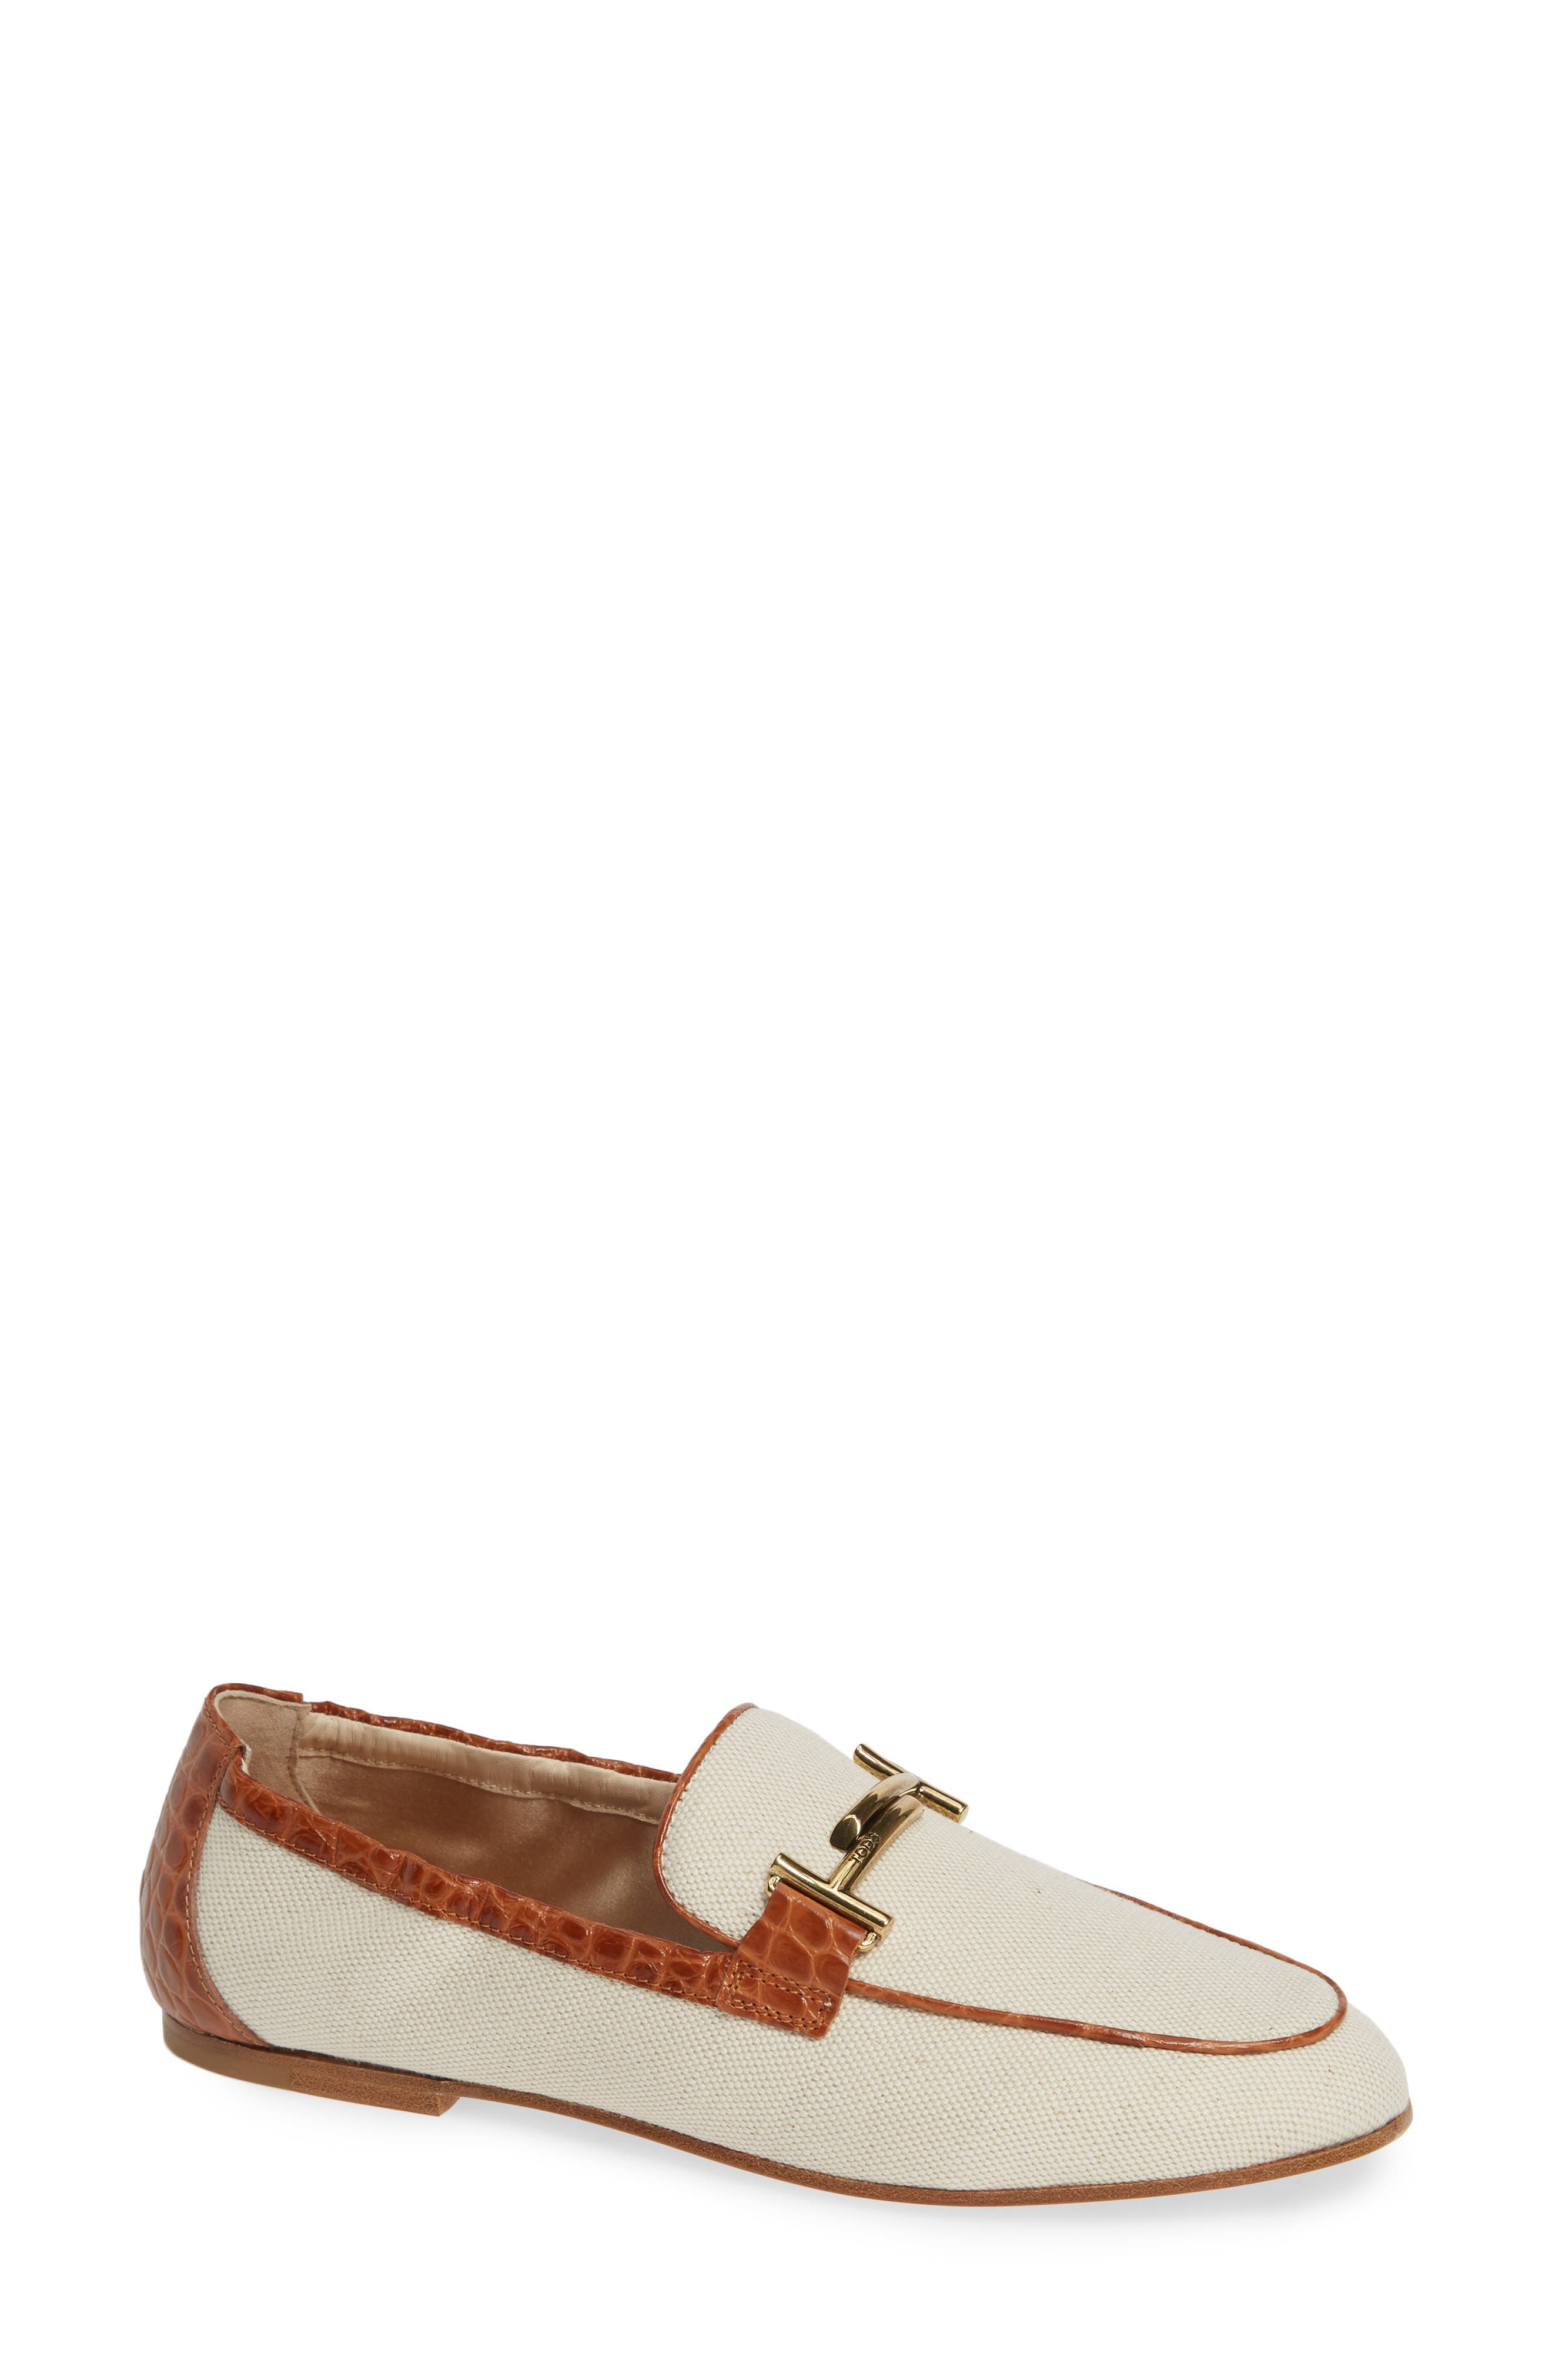 TOD'S,                             Double-T Scrunch Loafer,                             Main thumbnail 1, color,                             STRIPE/ CARAMEL